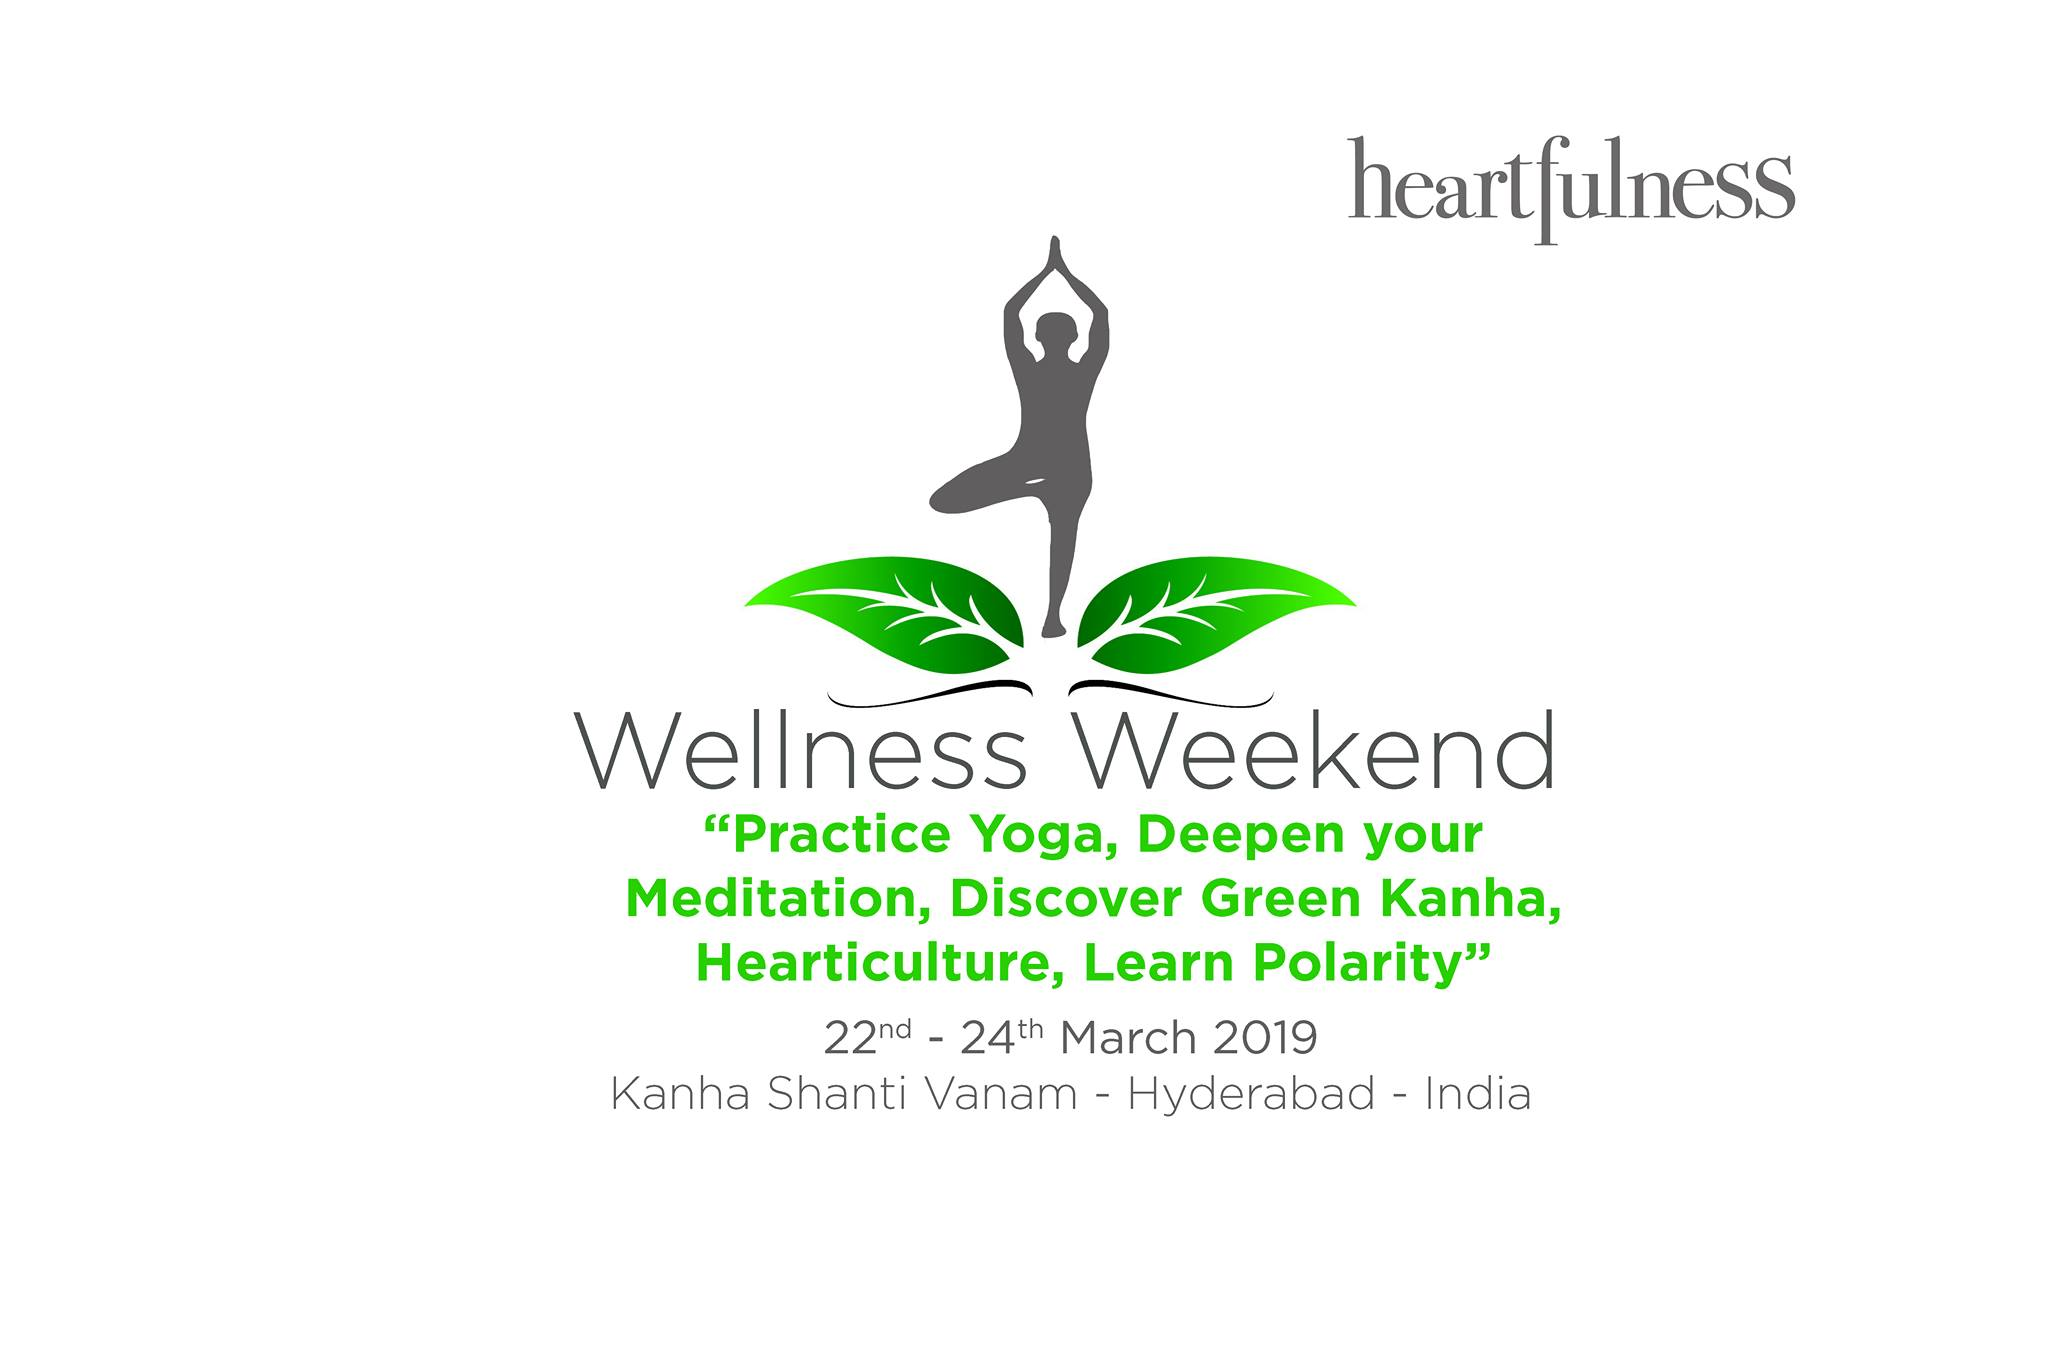 Heartfulness Wellness Weekend